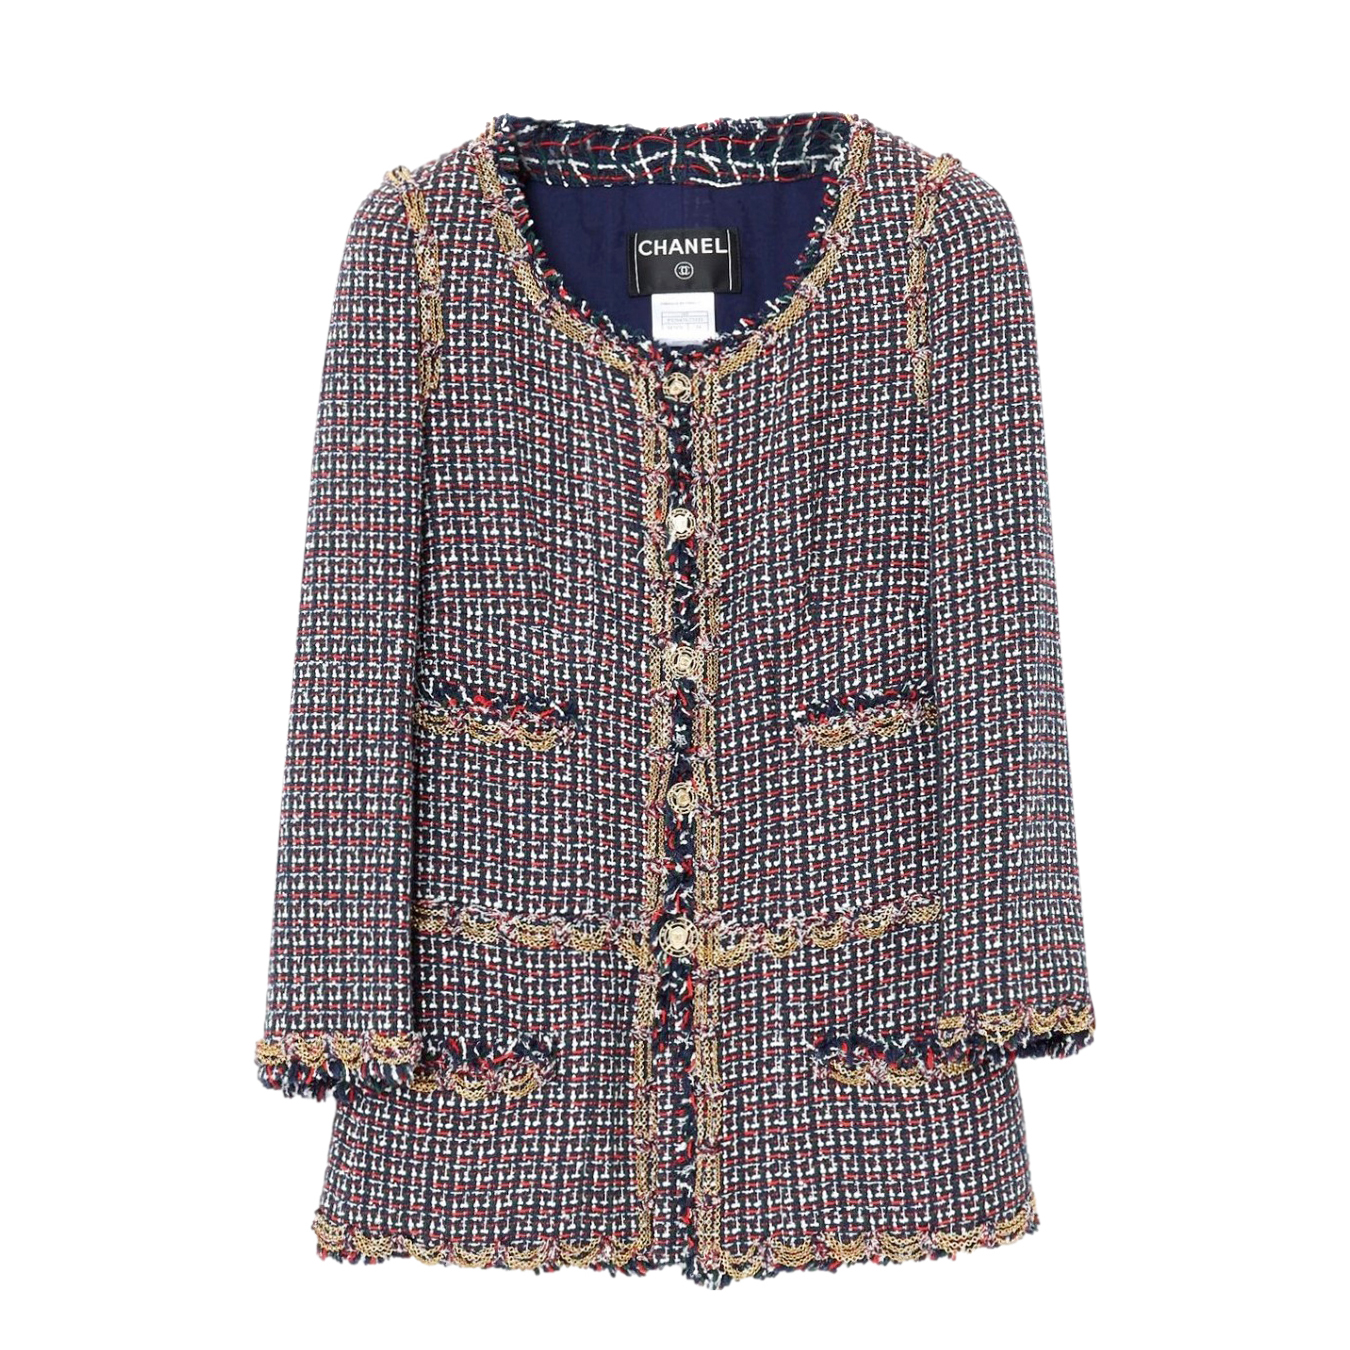 Chanel Chain Detail Multicoloured Tweed Jacket